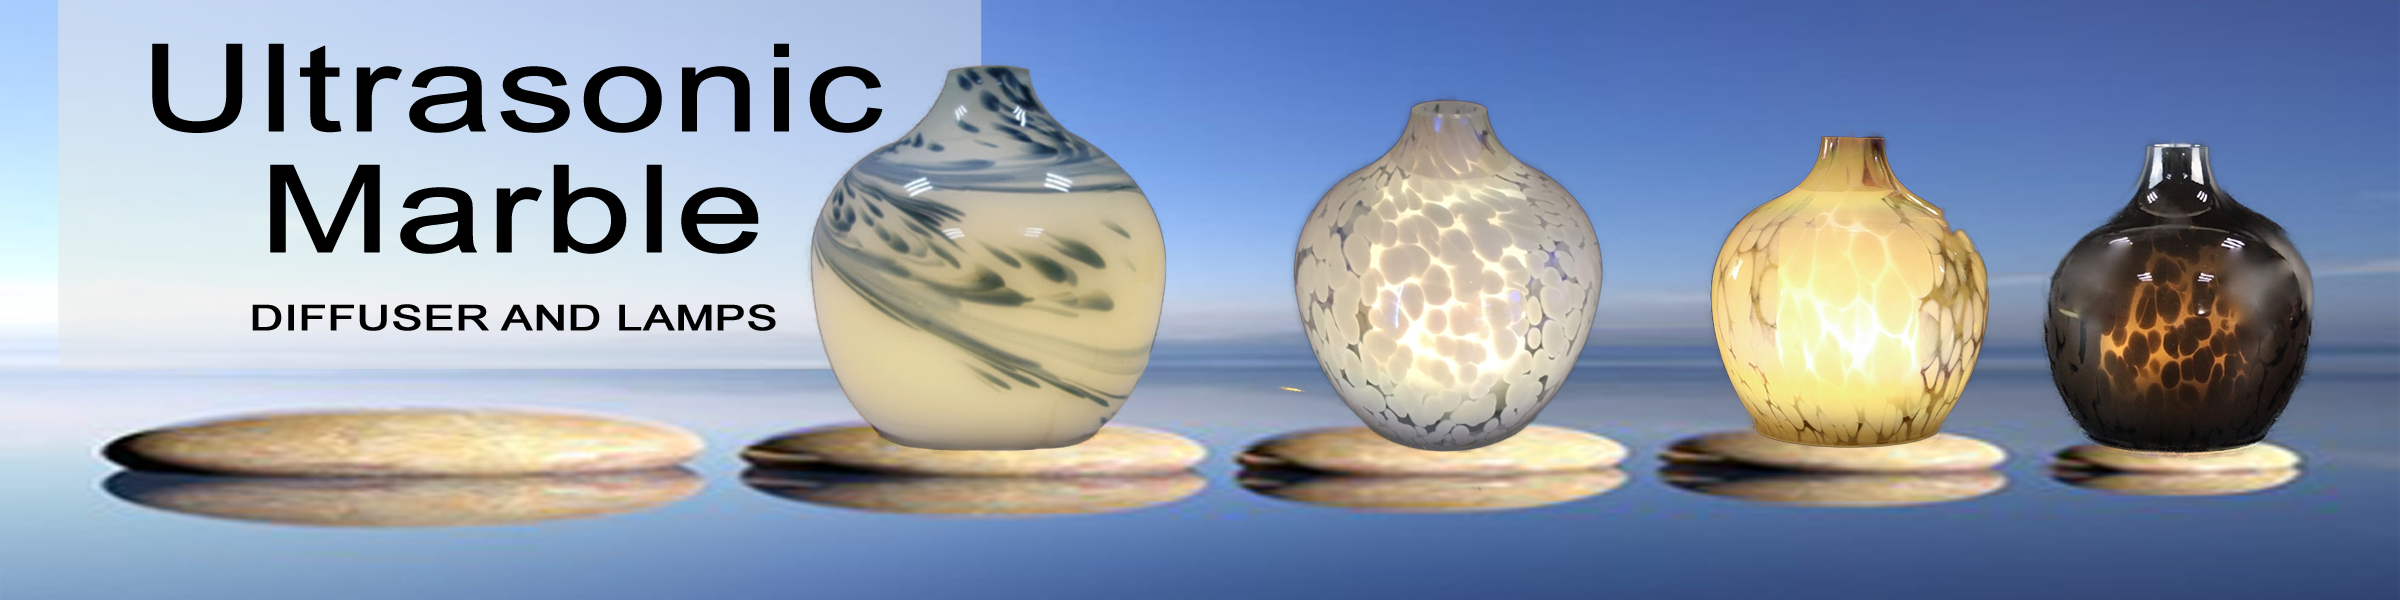 Ultrasonic Marble Diffuser Lamps